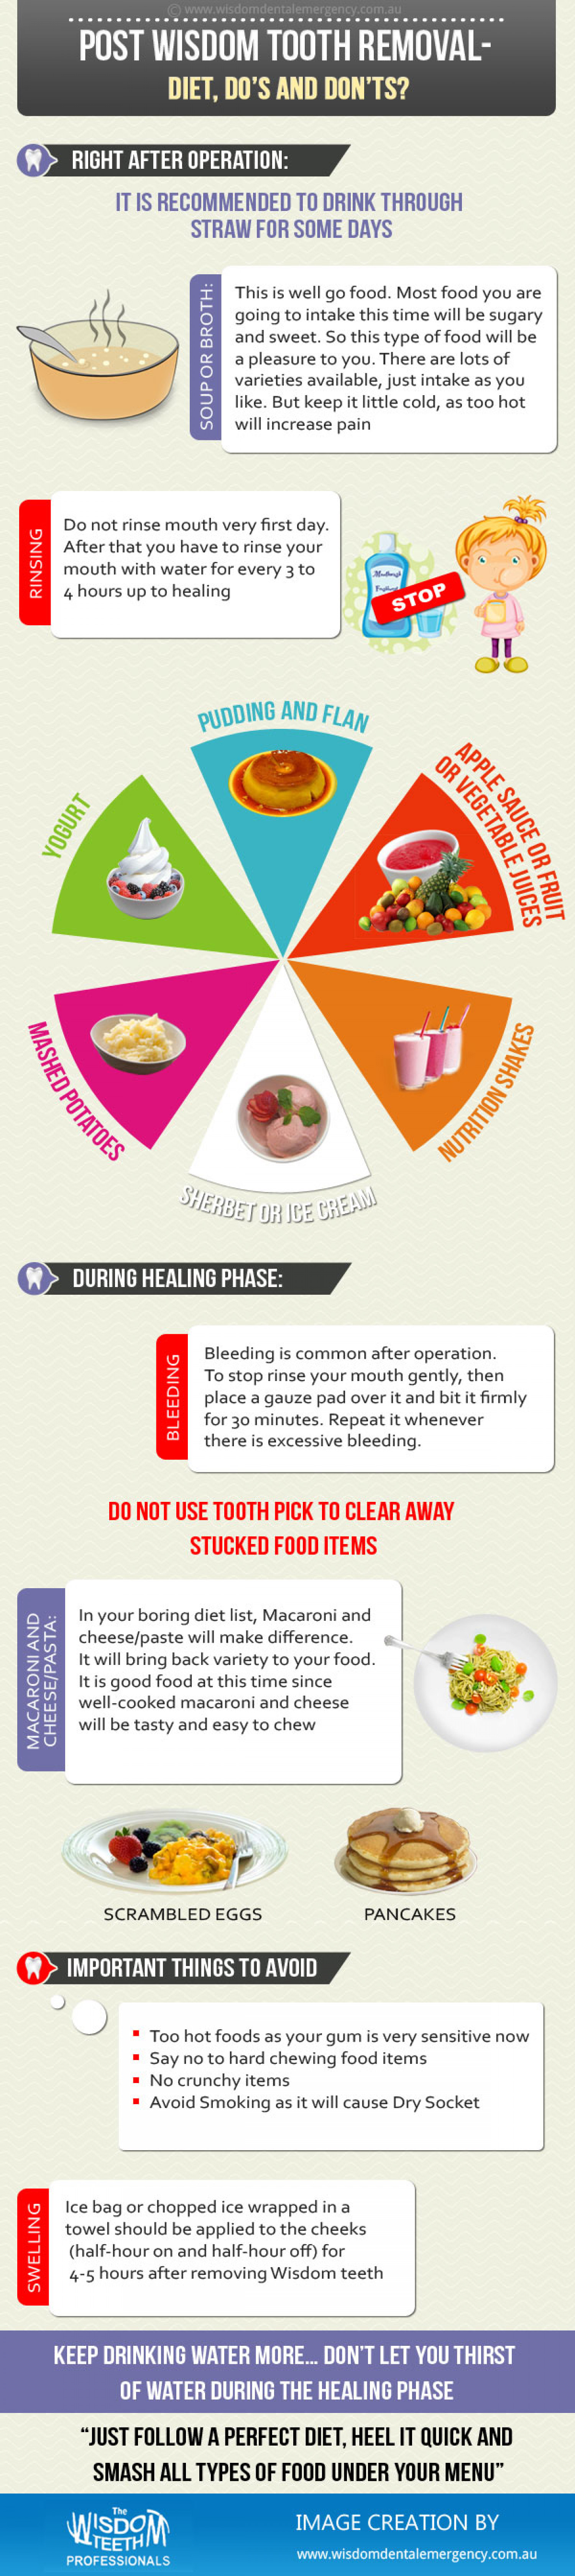 Post Wisdom Tooth Removal Diet Infographic